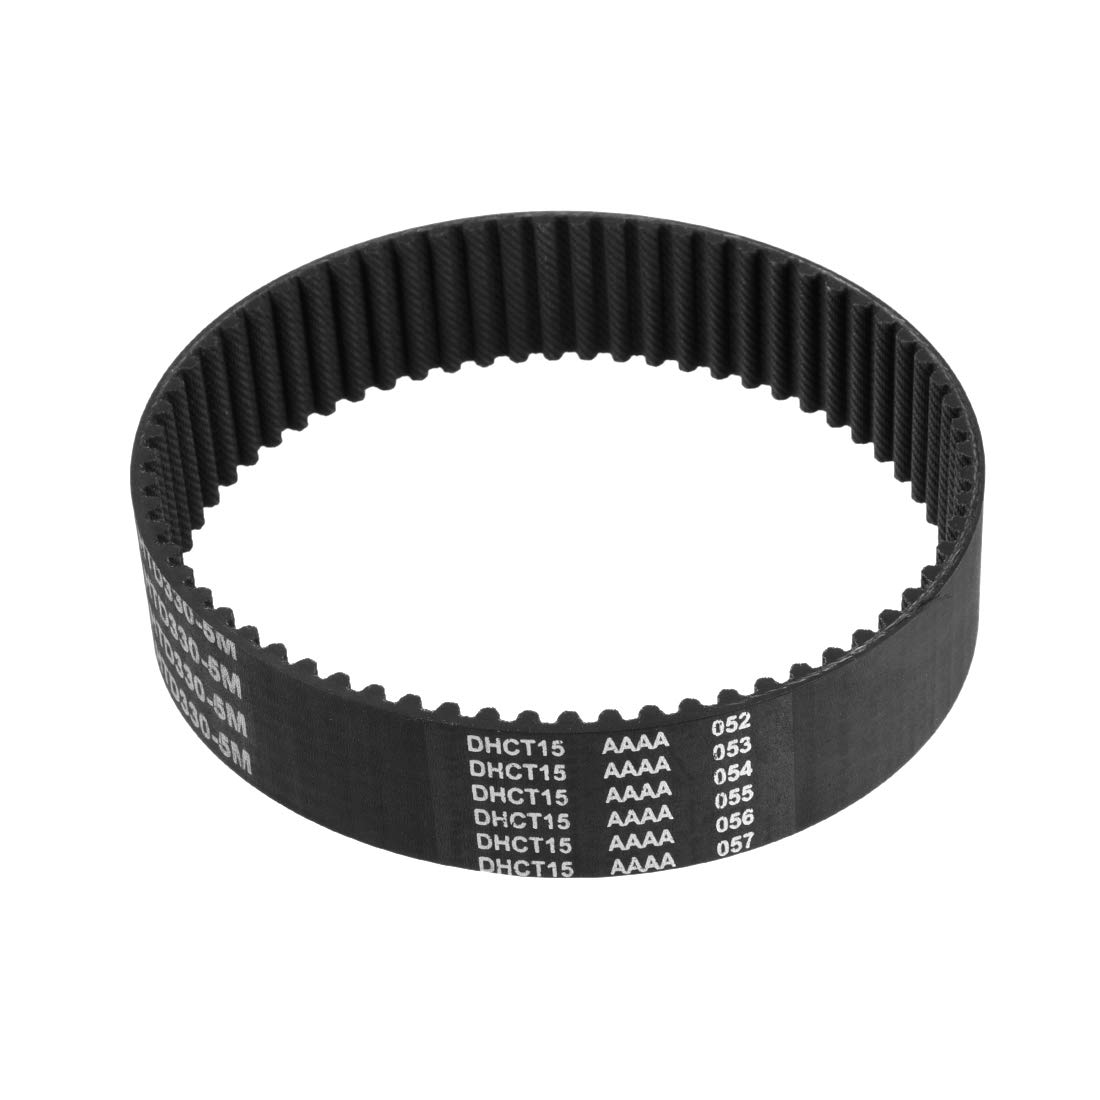 uxcell HTD 5M330 Rubber Timing Belt Synchronous Closed Loop Belt Timing Pulley Tools 25mm Width